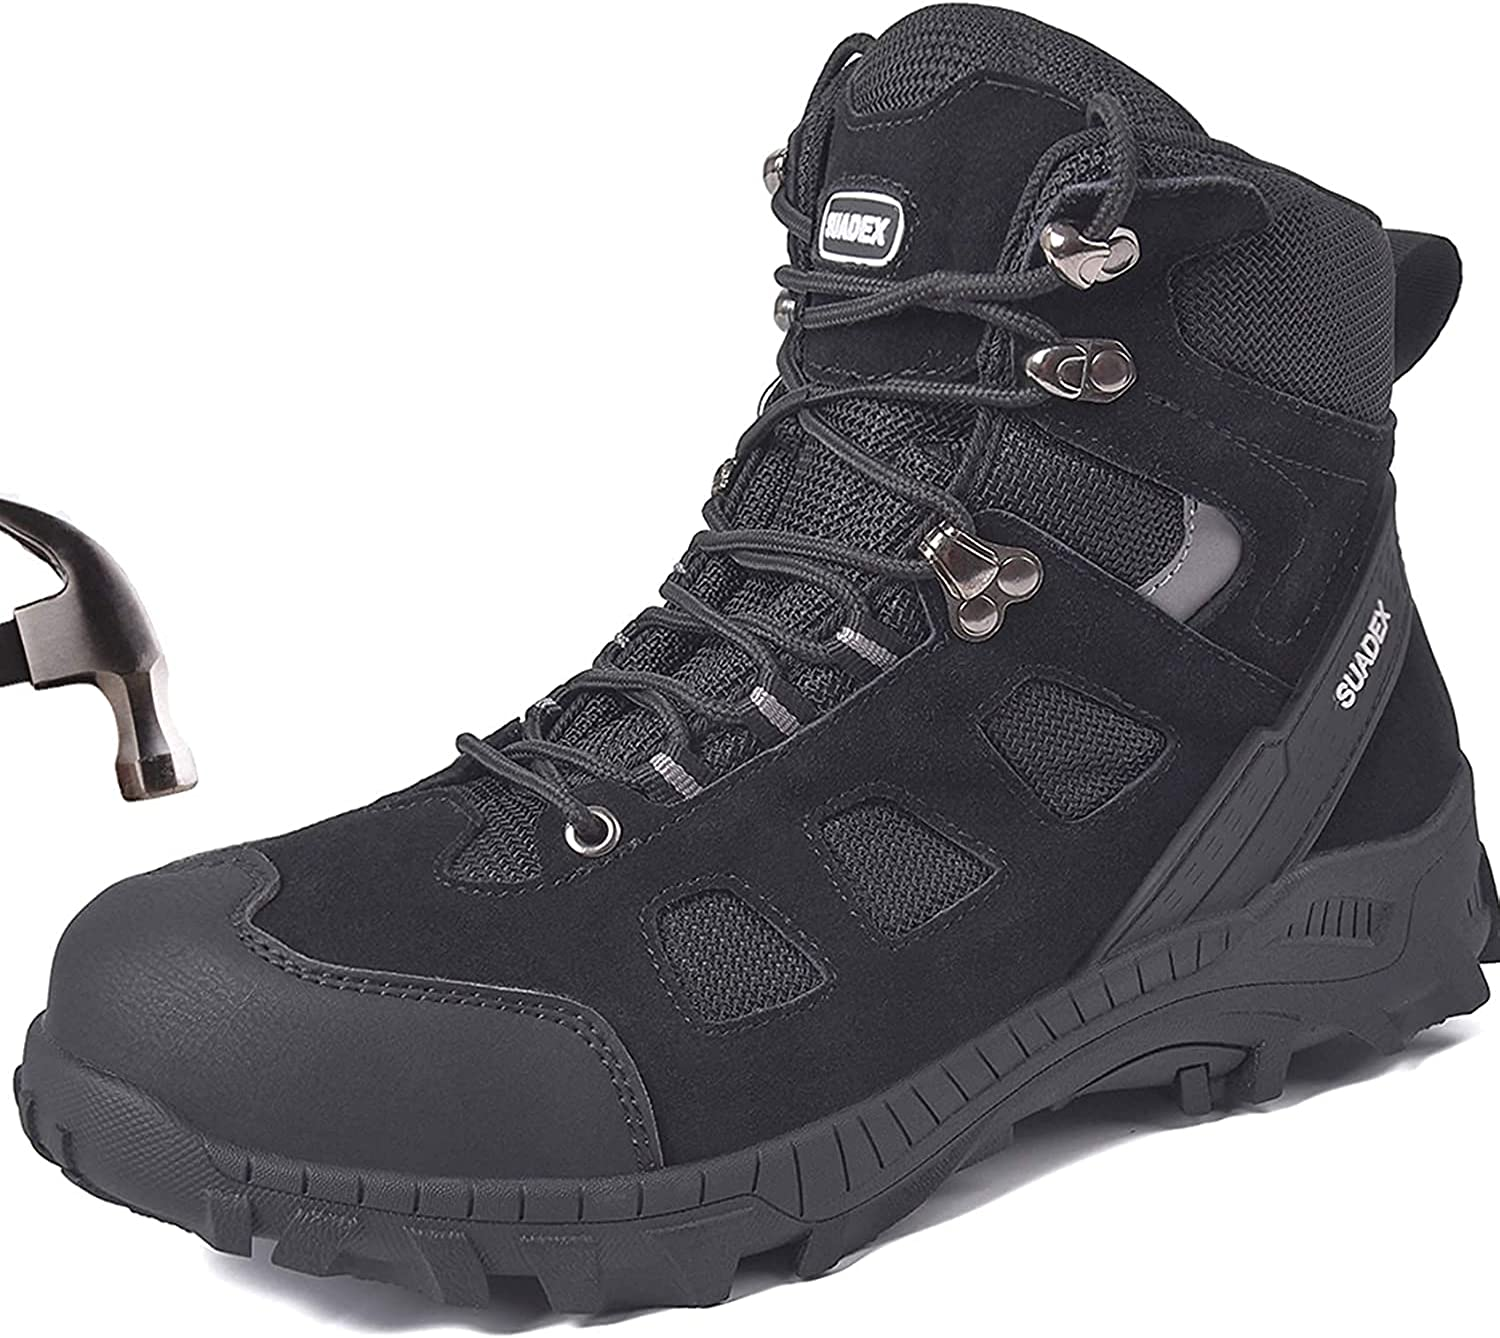 SUADEX Max New Free Shipping 87% OFF Steel Toe Boots for Men Women Indestructible Sh